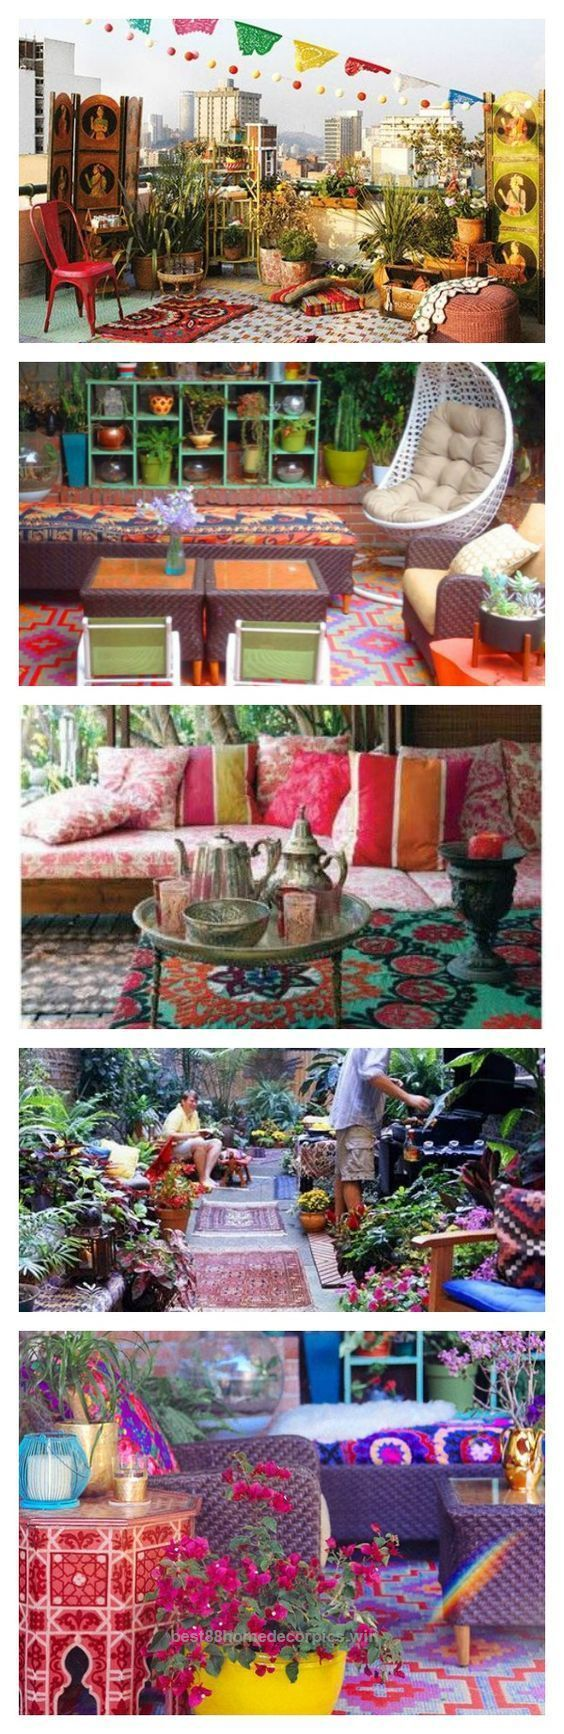 Lovely Colorful Bohemian Outdoor Spaces & How to Get the Look {bohemian backyards, porches and patios}  The post  Colorful Bohemian Outdoor Spaces & How to Get the Look {bohemian backyards, …  ..